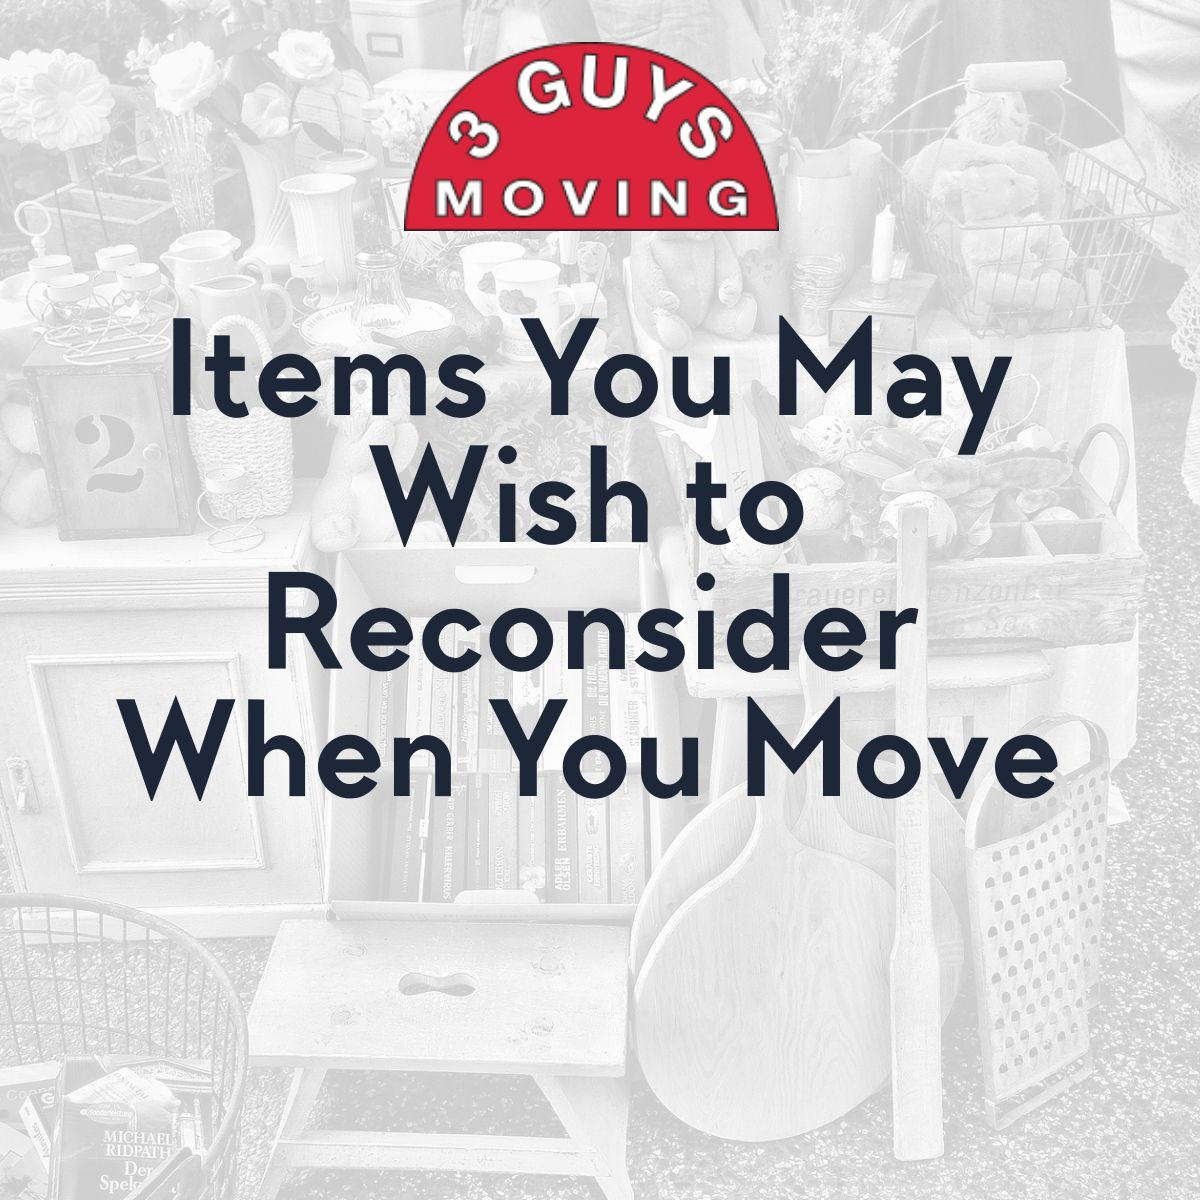 Items You May Wish to Reconsider When You Move - Items You May Wish to Reconsider When You Move